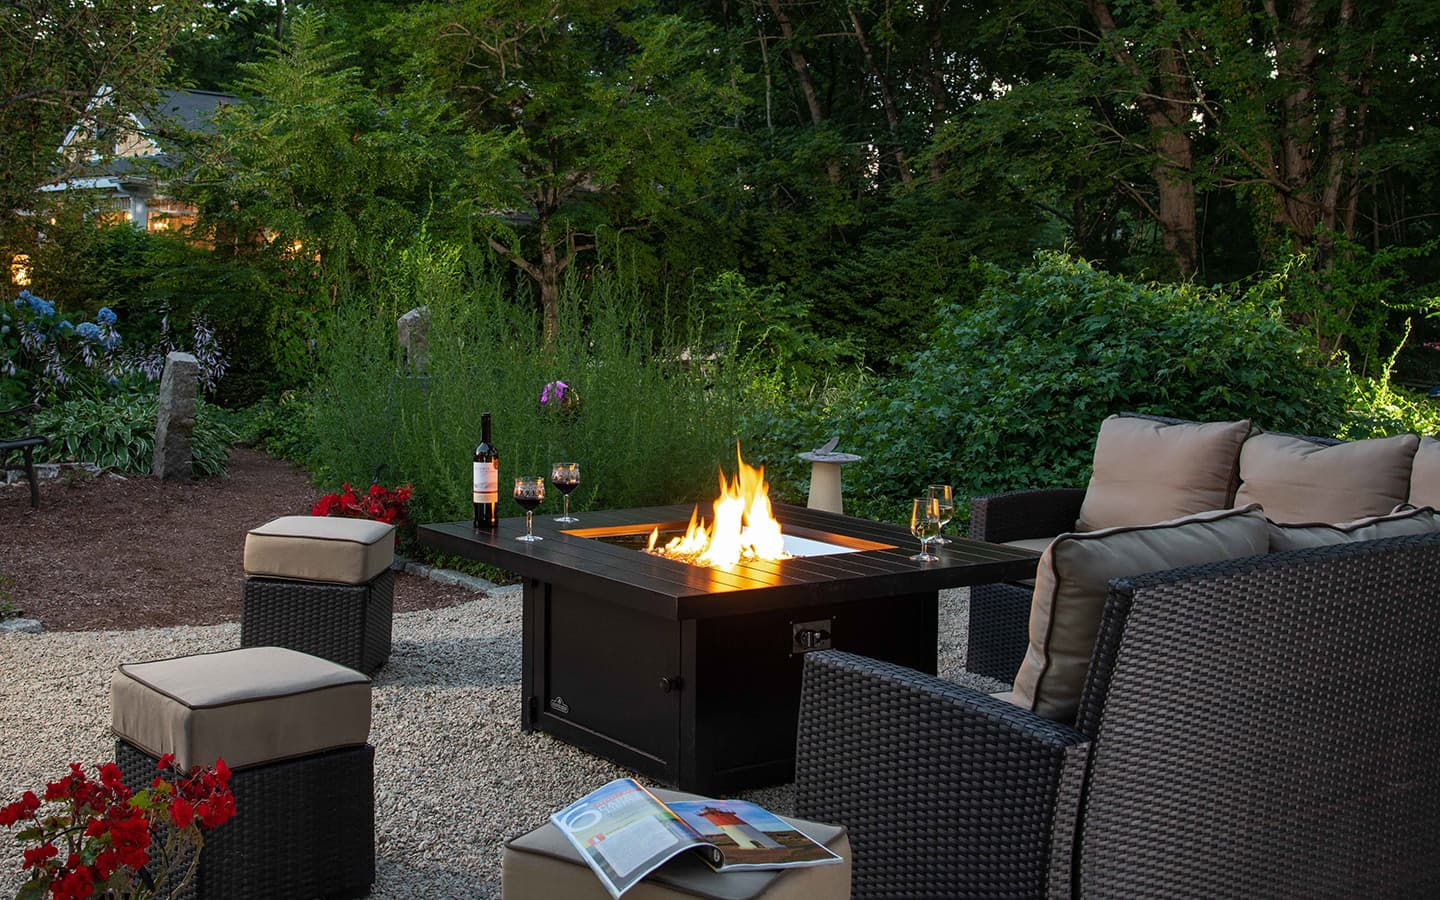 Outdoor Firepit at Our Inn on Cape Cod